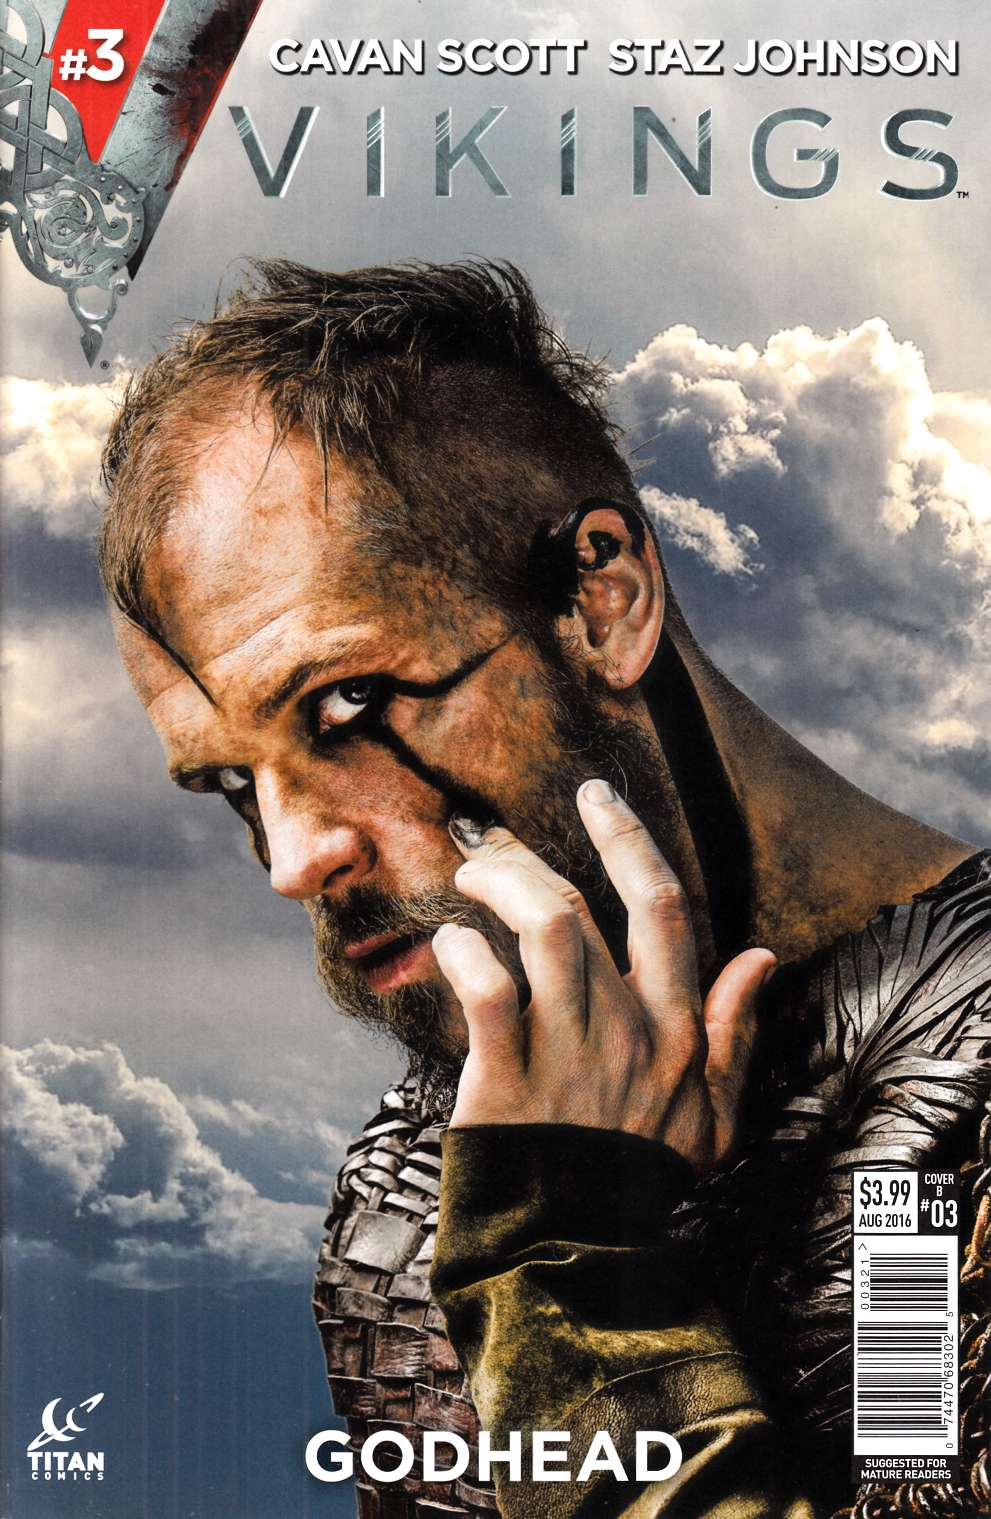 Vikings #3 Cover B- Photo [Titan Comic]